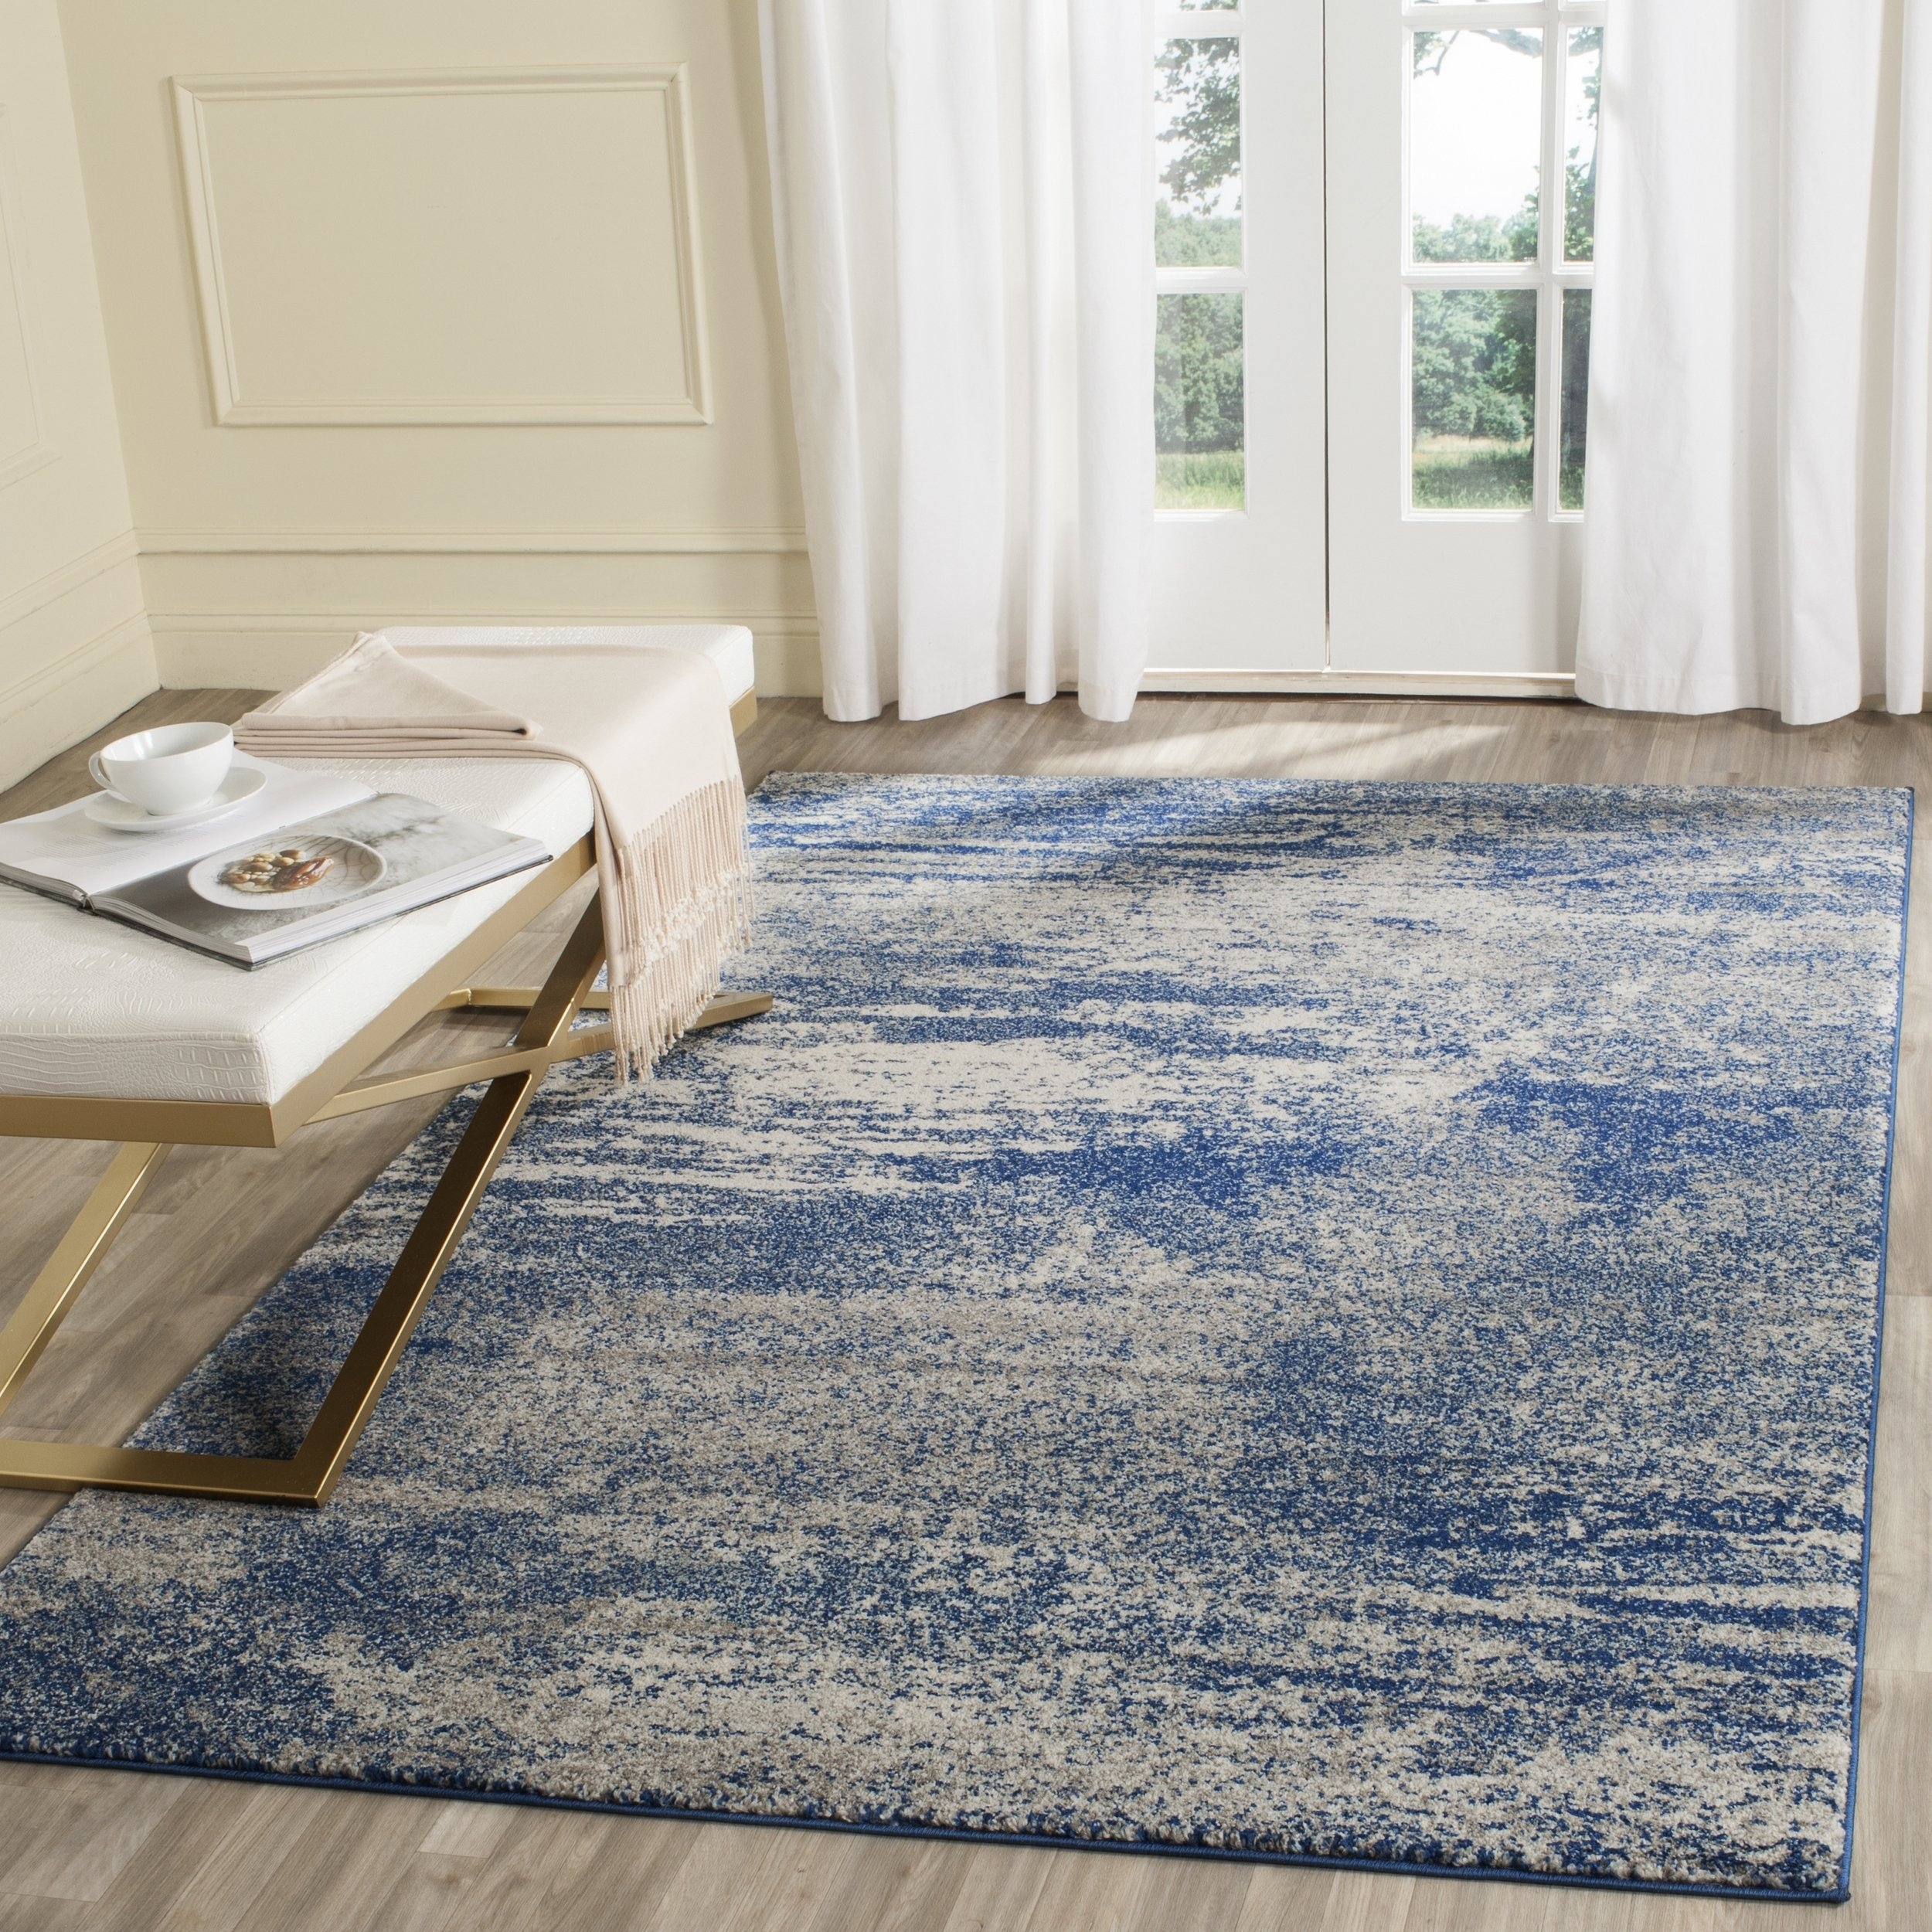 Safavieh Evoke Collection EVK272A Distressed Modern Abstract Navy and Ivory Area Rug (5'1'' x 7'6'')